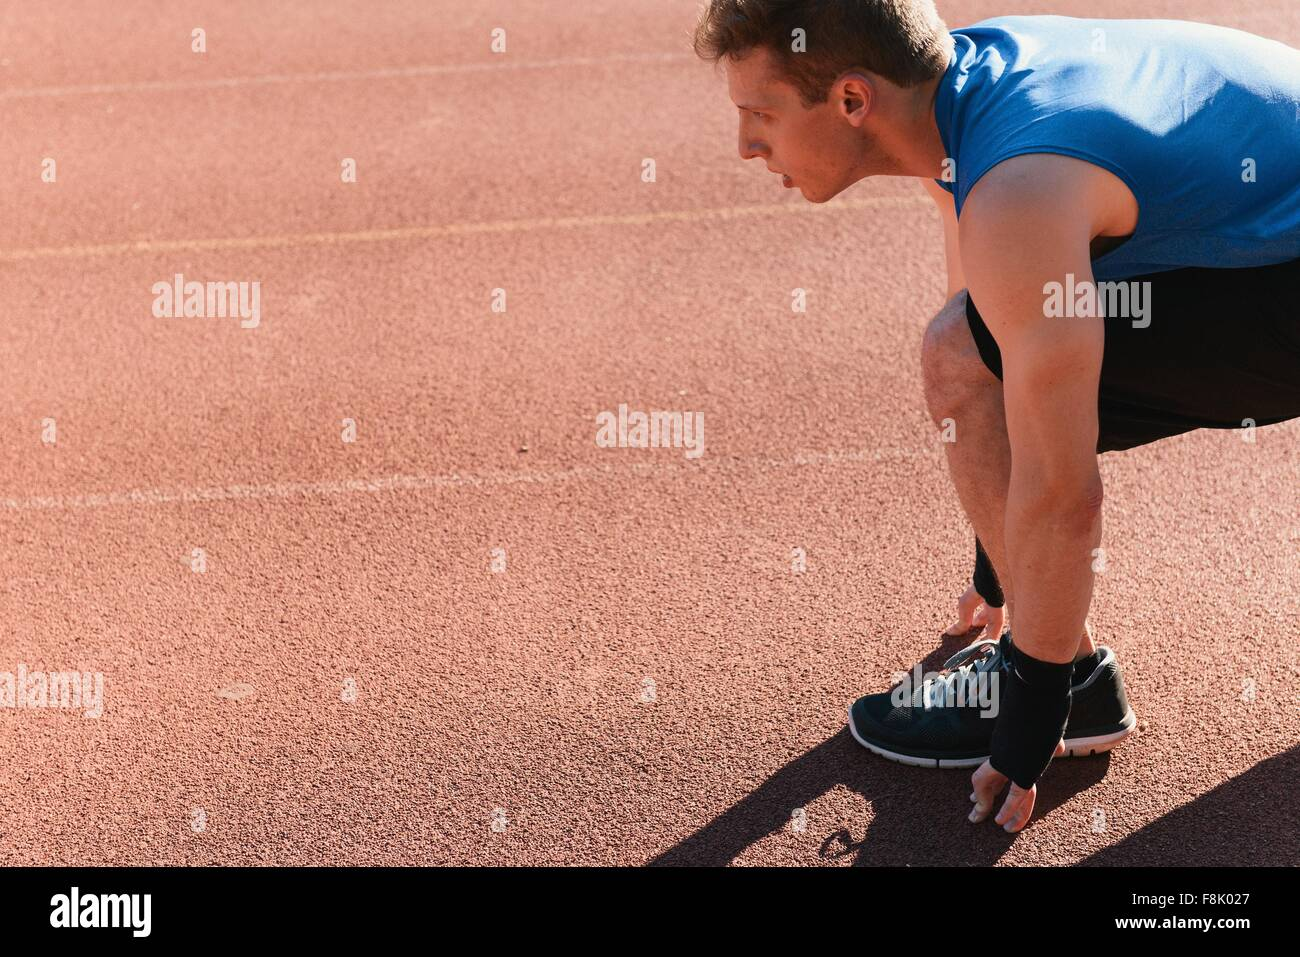 Young man in starting position on sports track - Stock Image